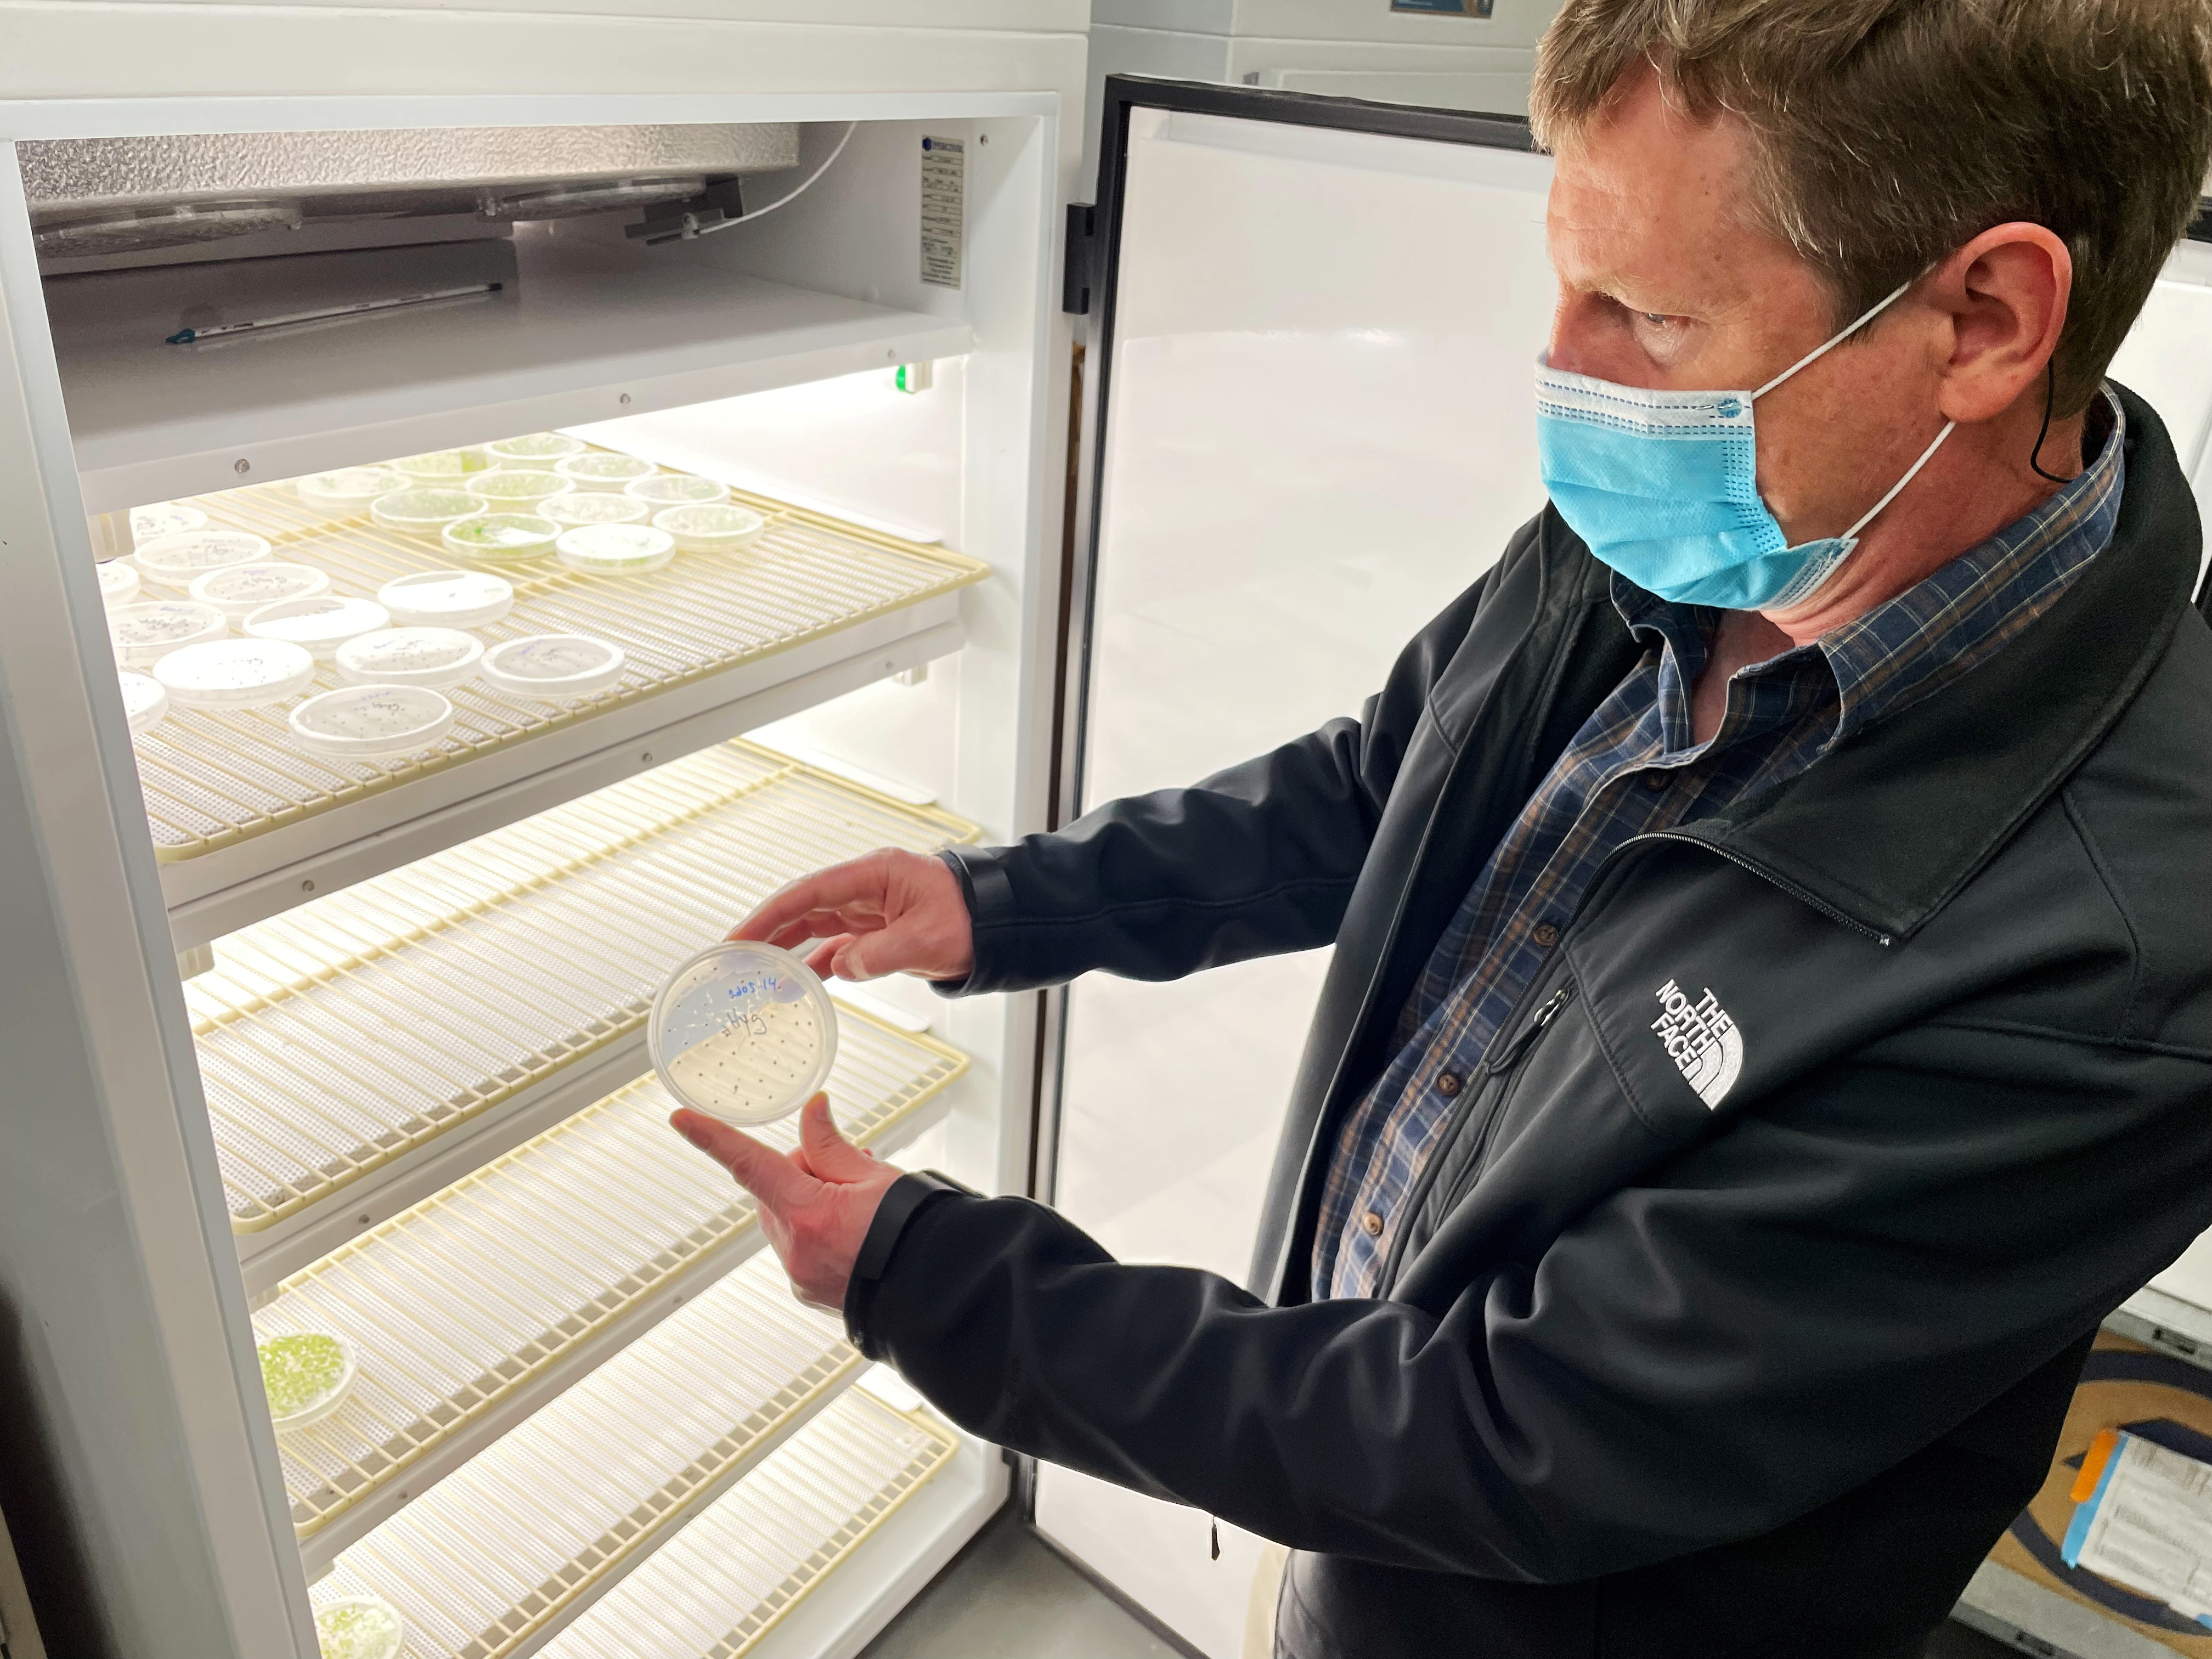 Geneticist John Sedbrook inspects covercress seeds at an Illinois State University laboratory in Normal, Illinois, U.S. May 6, 2021. Picture taken May 6, 2021. REUTERS/Karl Plume